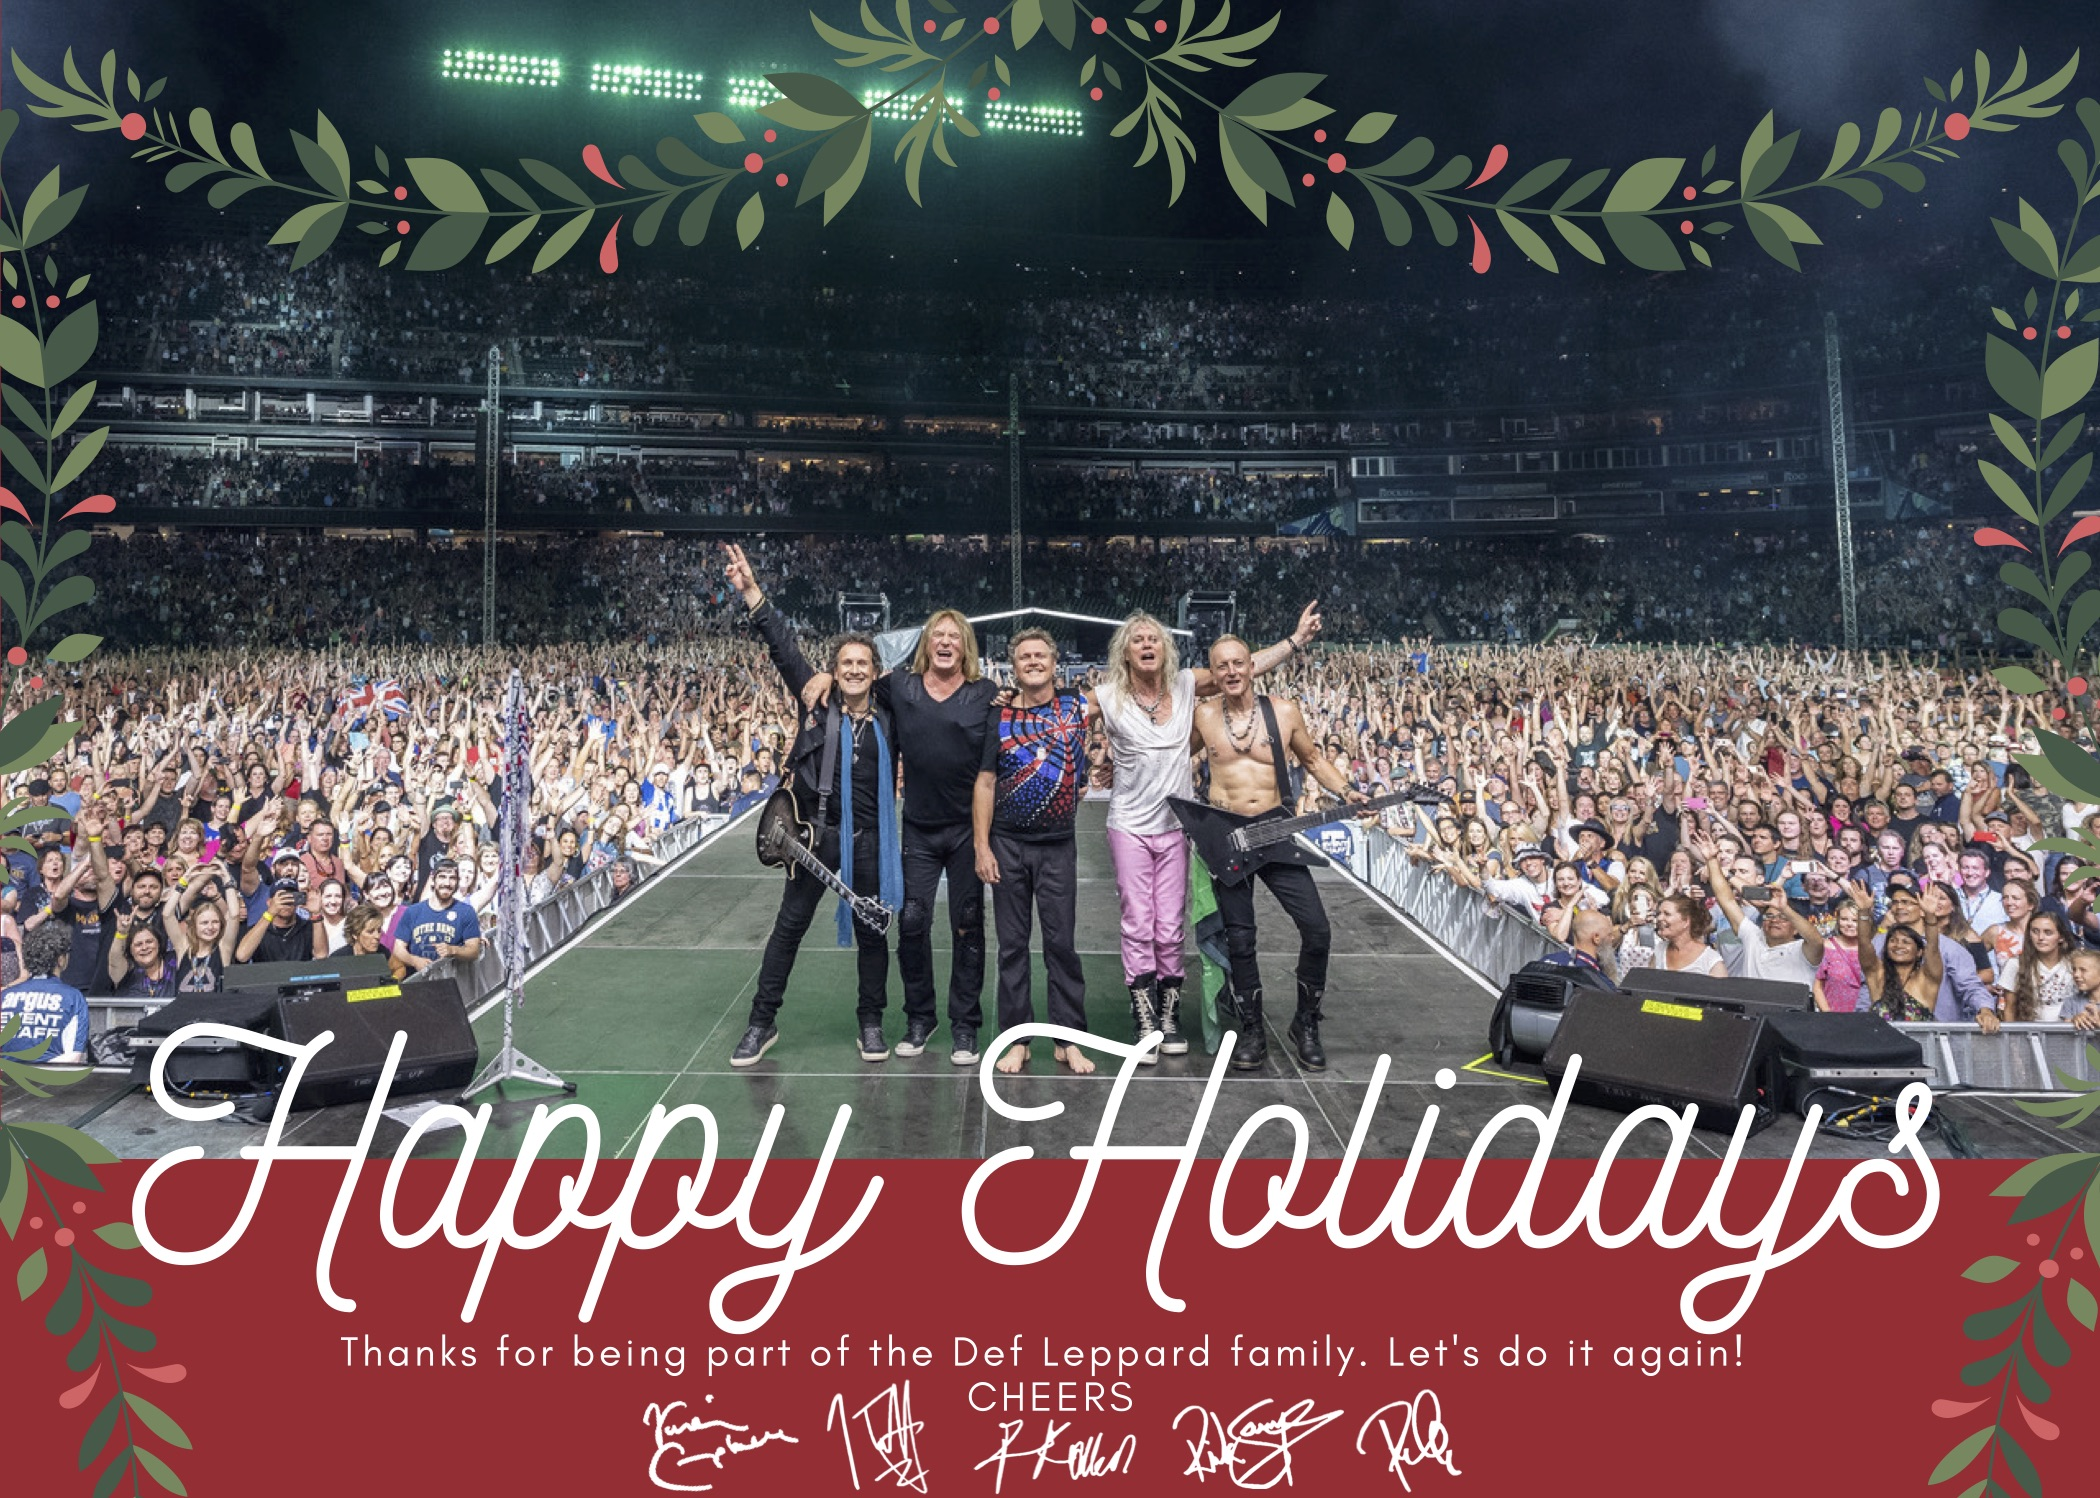 Happy Holidays From The Def Leppard Family Def Leppard